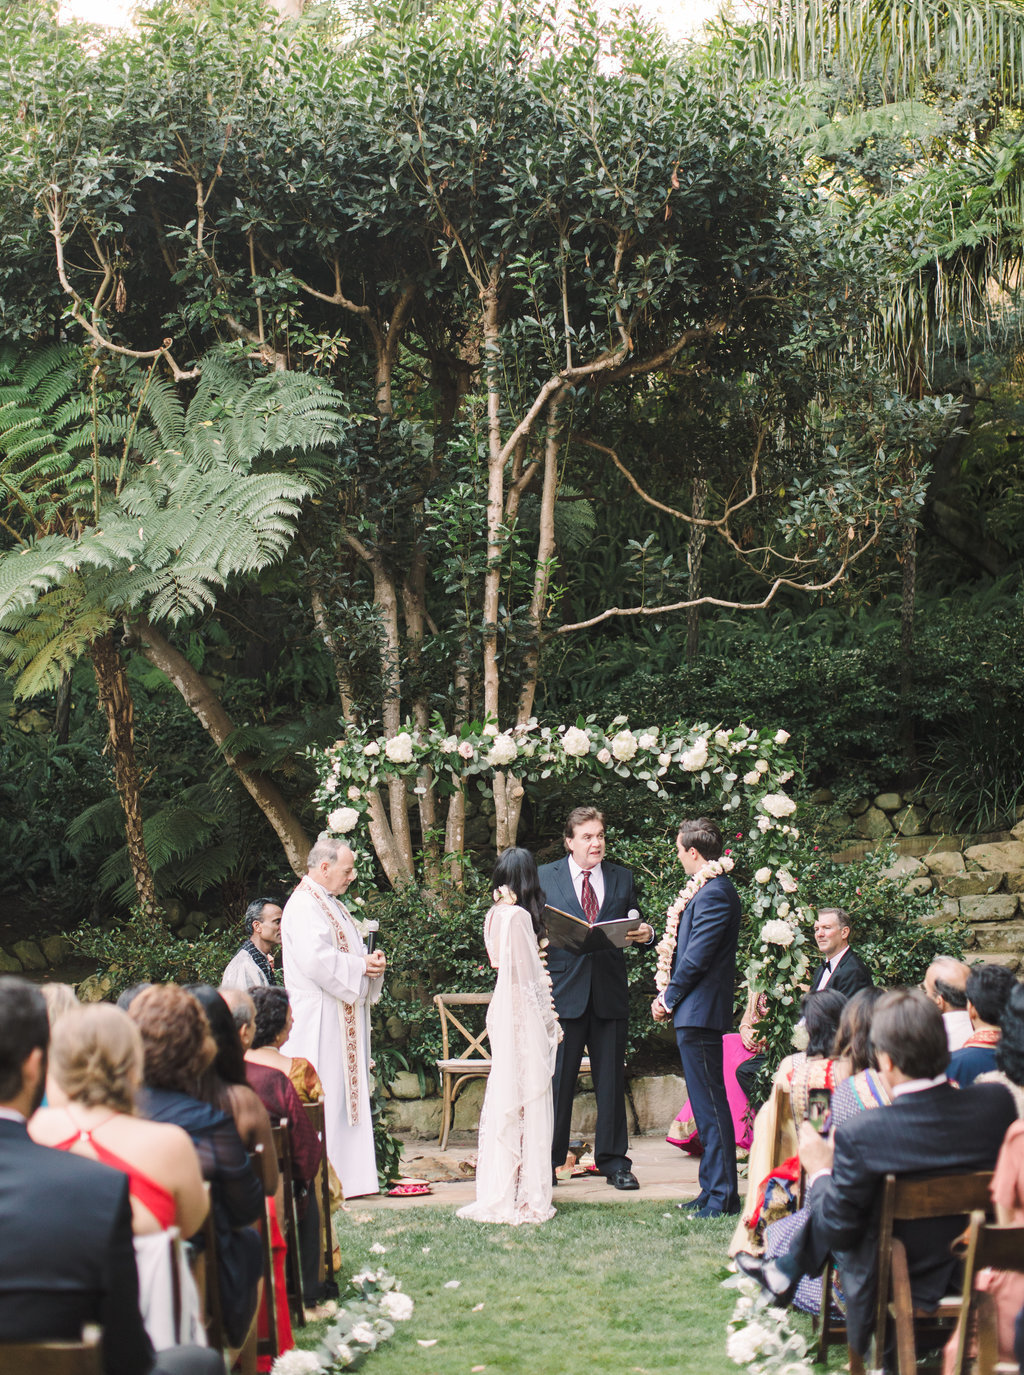 Blended Indian and Christian wedding ceremony at Butterfly Lane Estate in Montecito